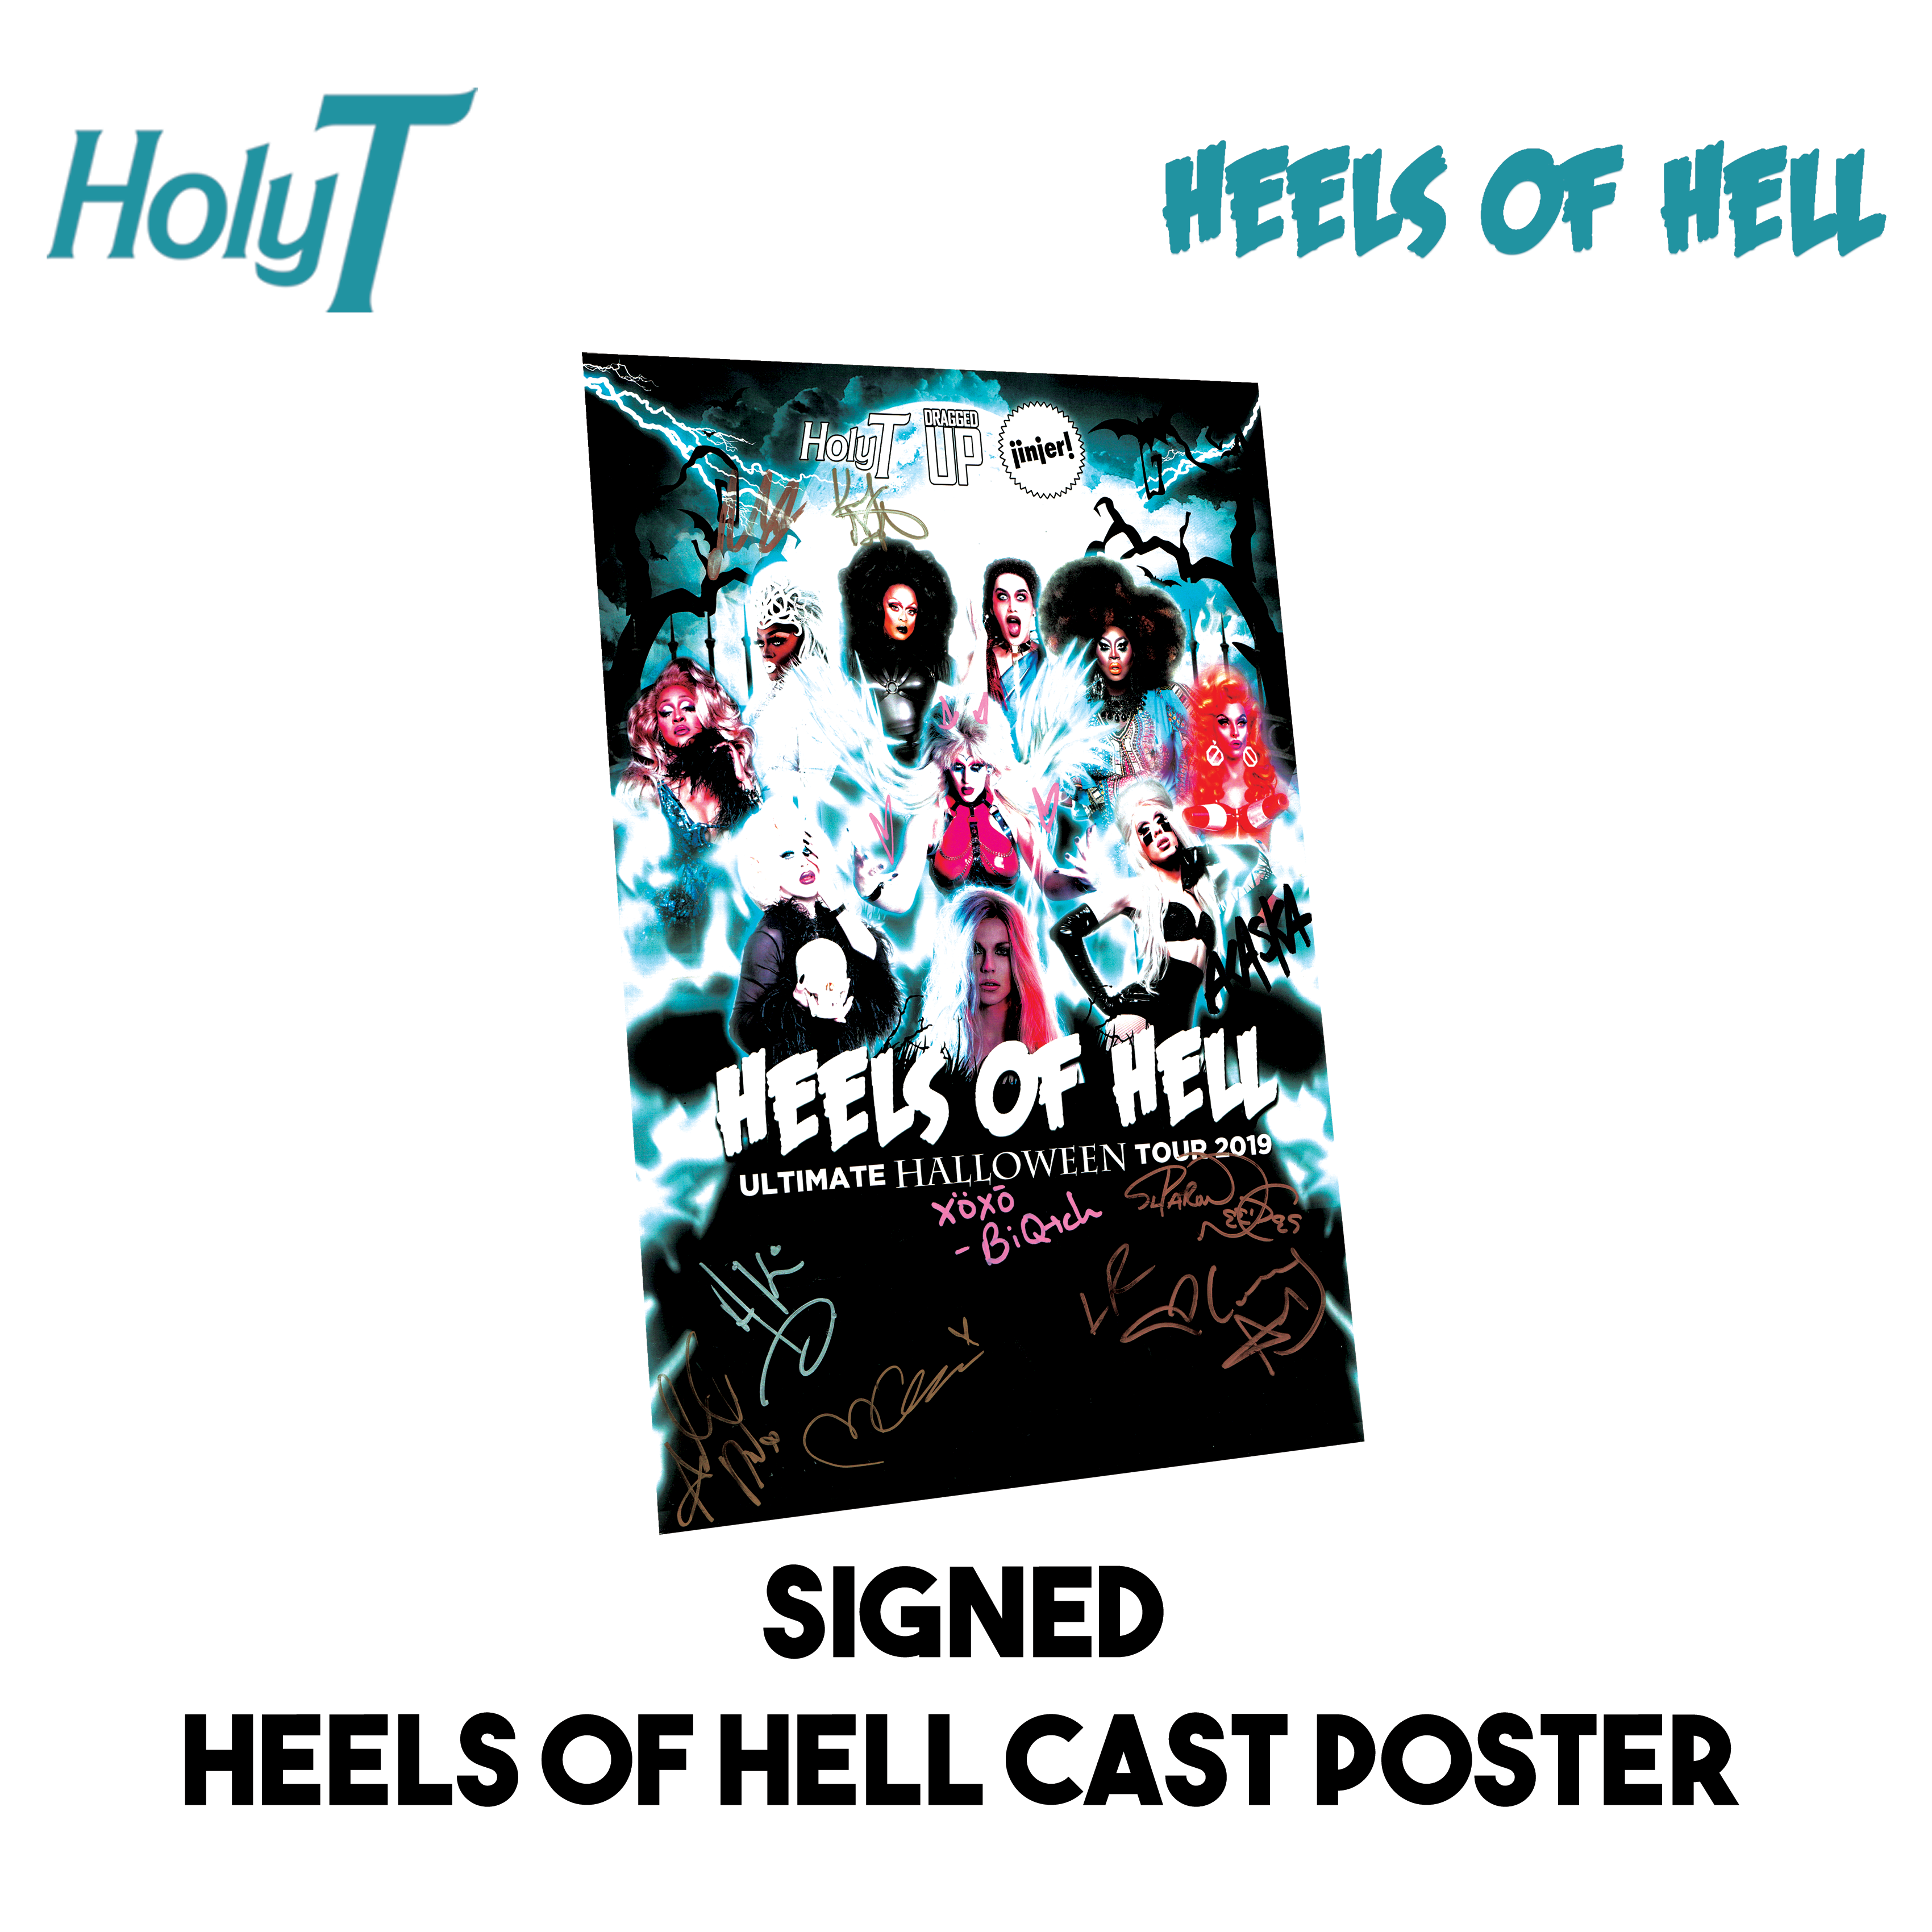 Heels of Hell Signed Poster